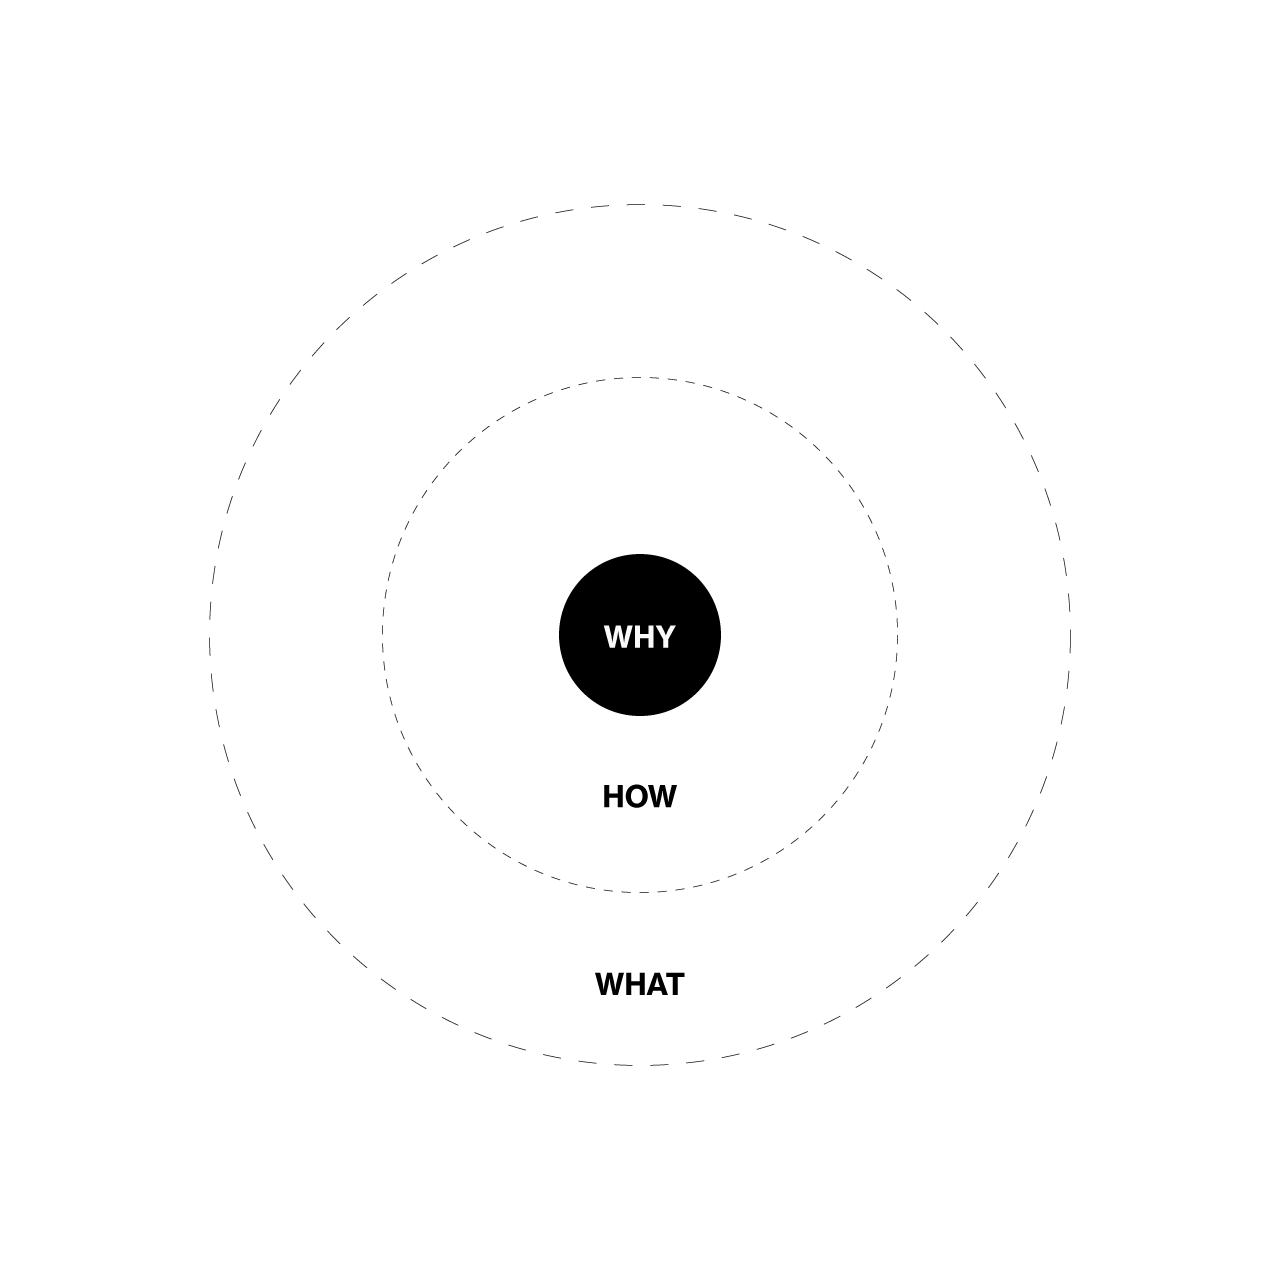 dimitrie-stanescu-designer-brand-strategy-desing-branding-why-how-what.png